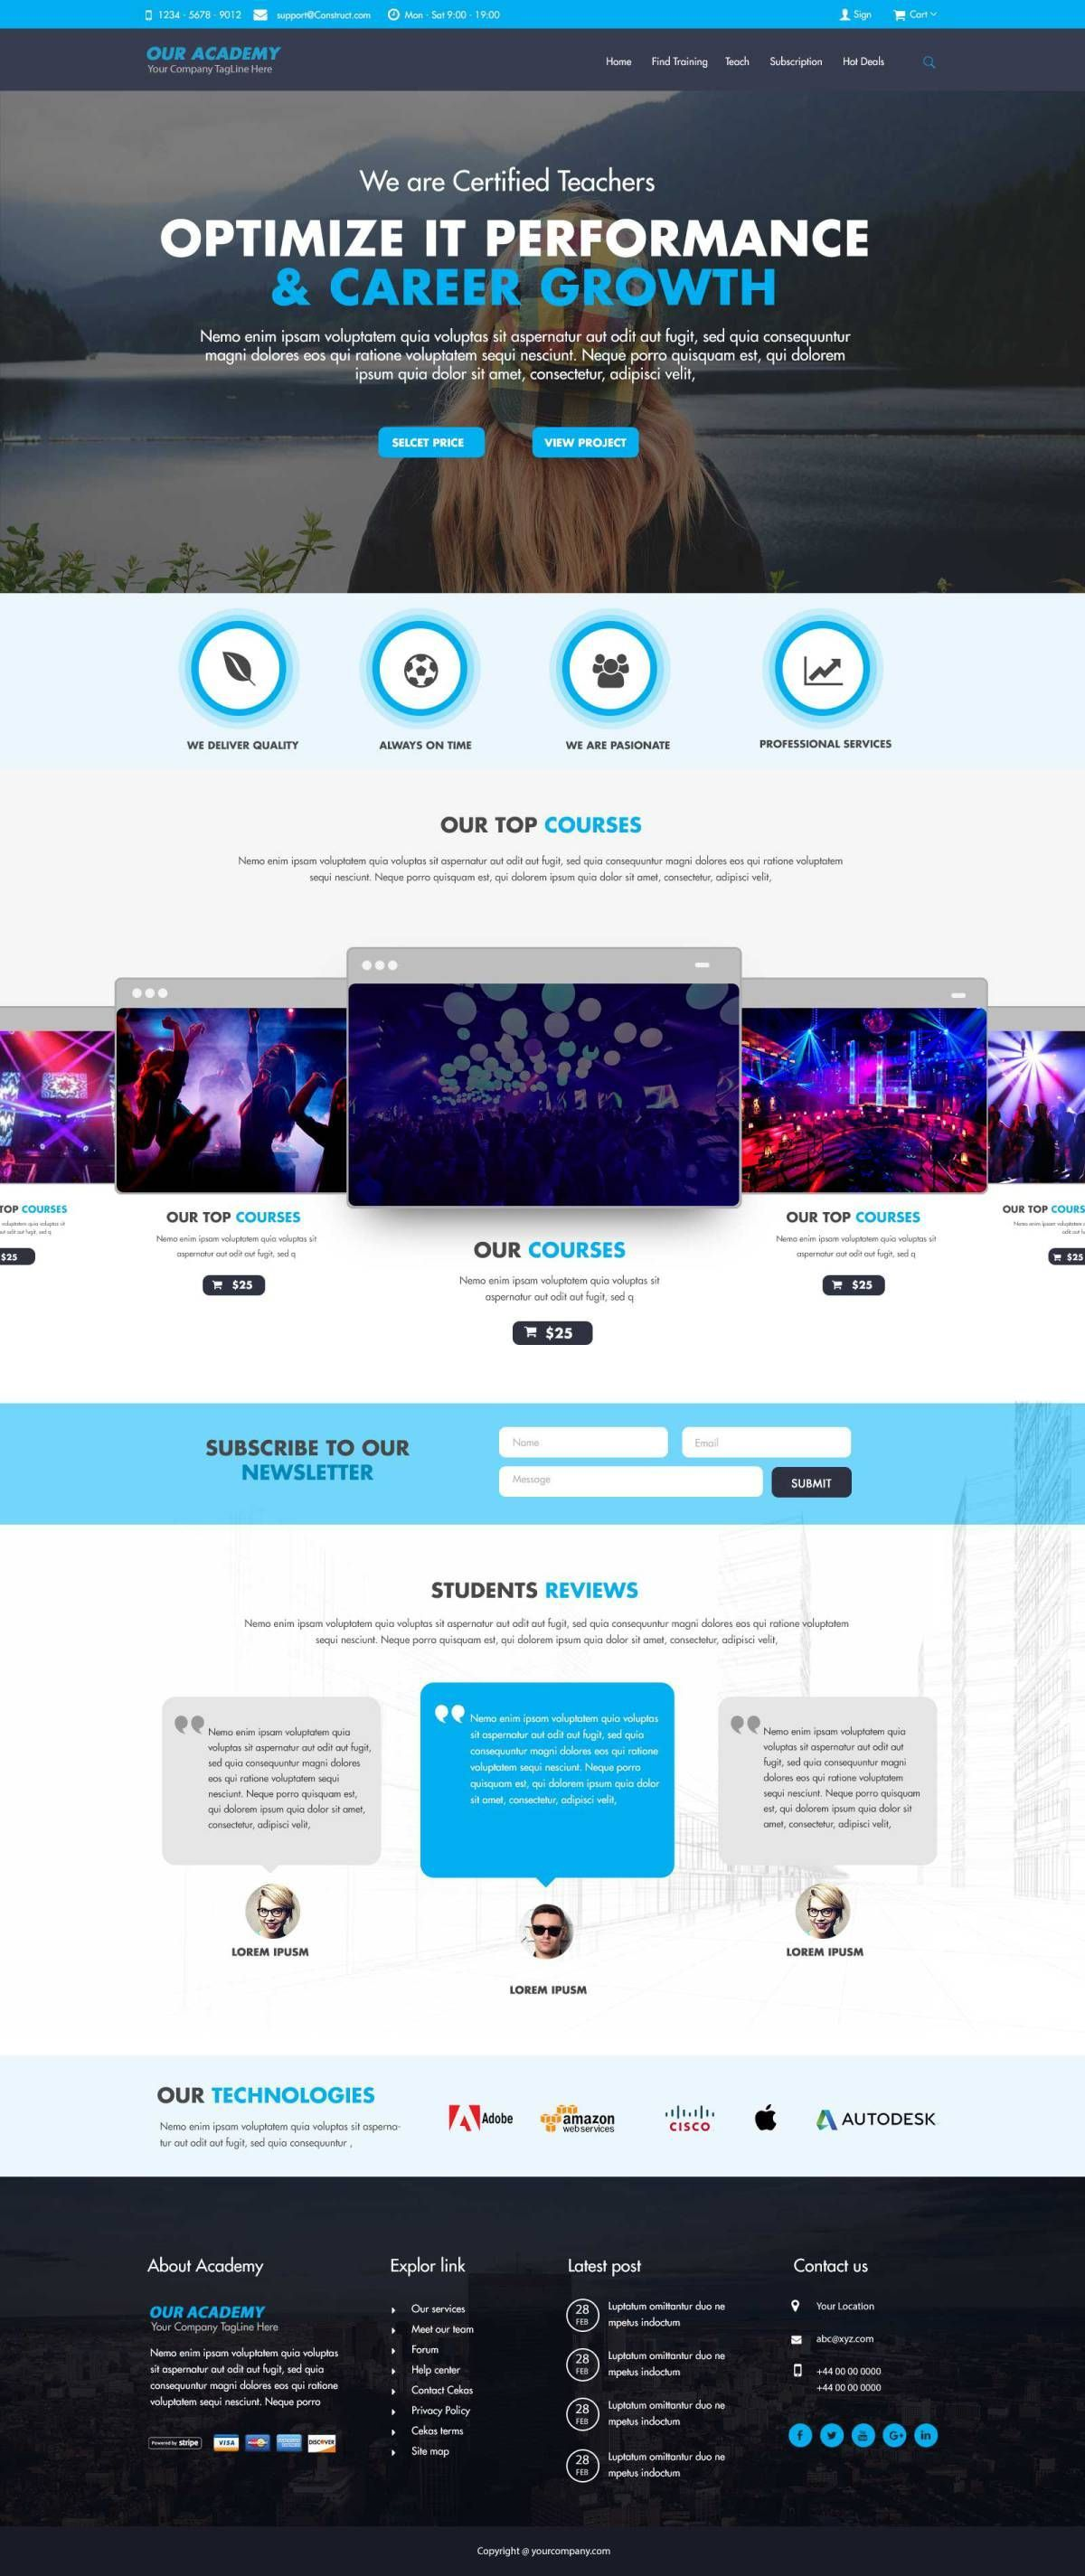 007 Amazing Website Template Free Download Picture  Online Shopping Colorlib New Wordpres Html5 For BusinesFull